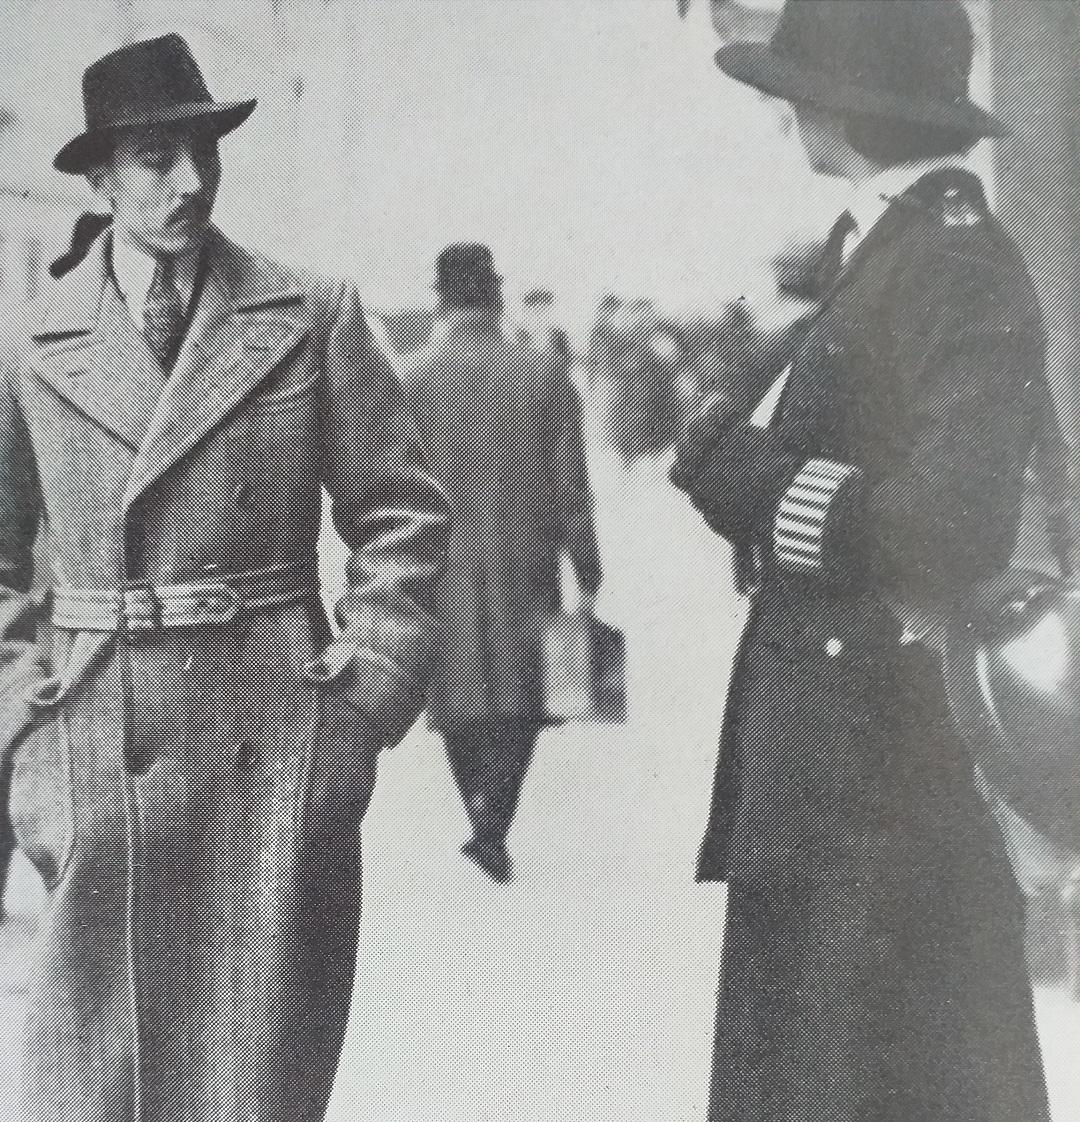 Le comte de paris en mission diplomatique en 1939 a londres 1